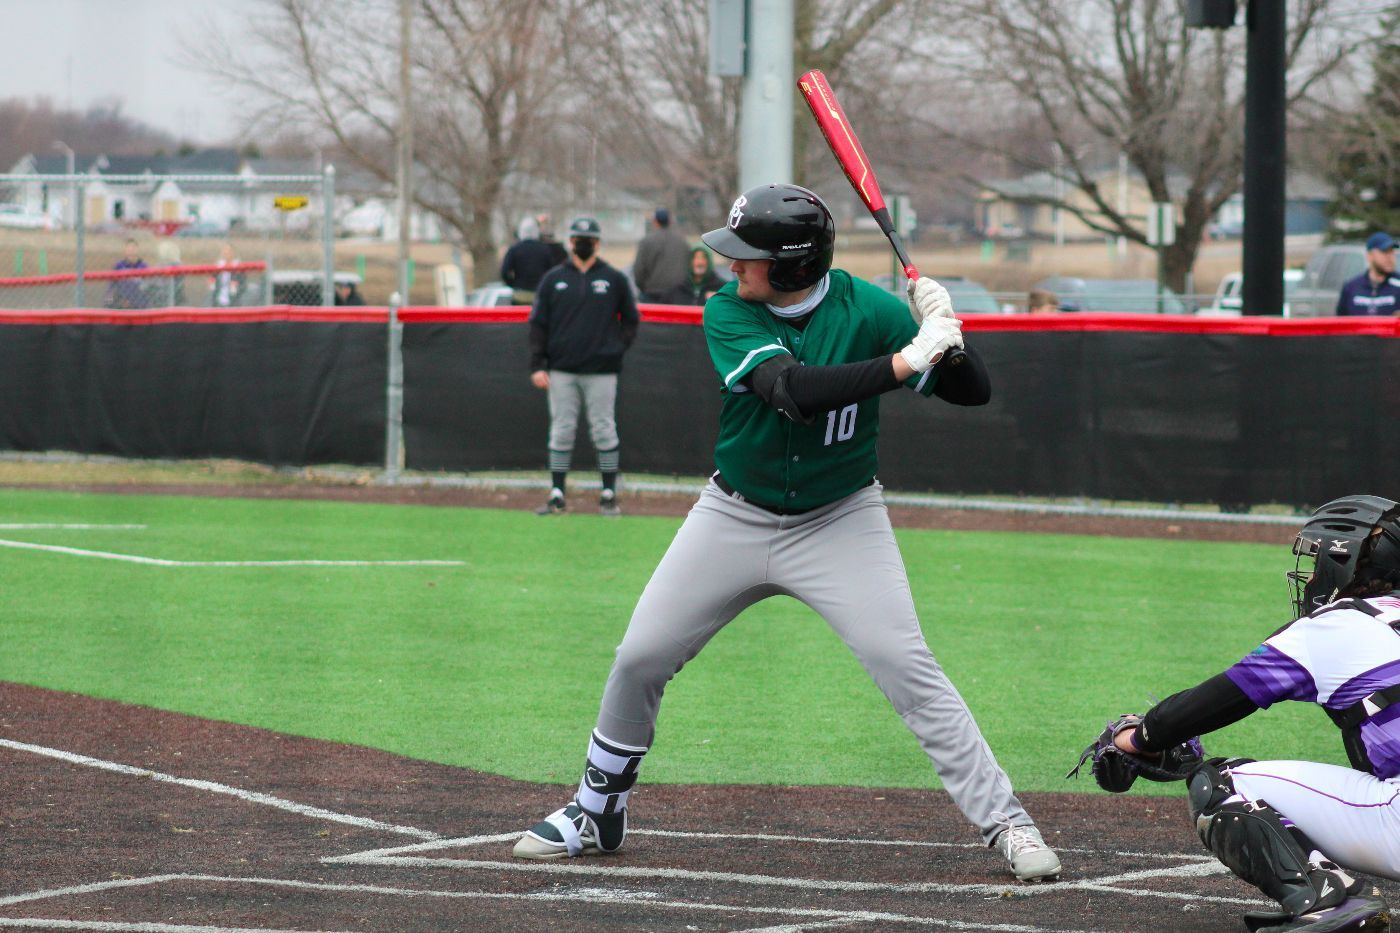 Seventh-inning burst gives Beaver Baseball 18-11 win over Cougars